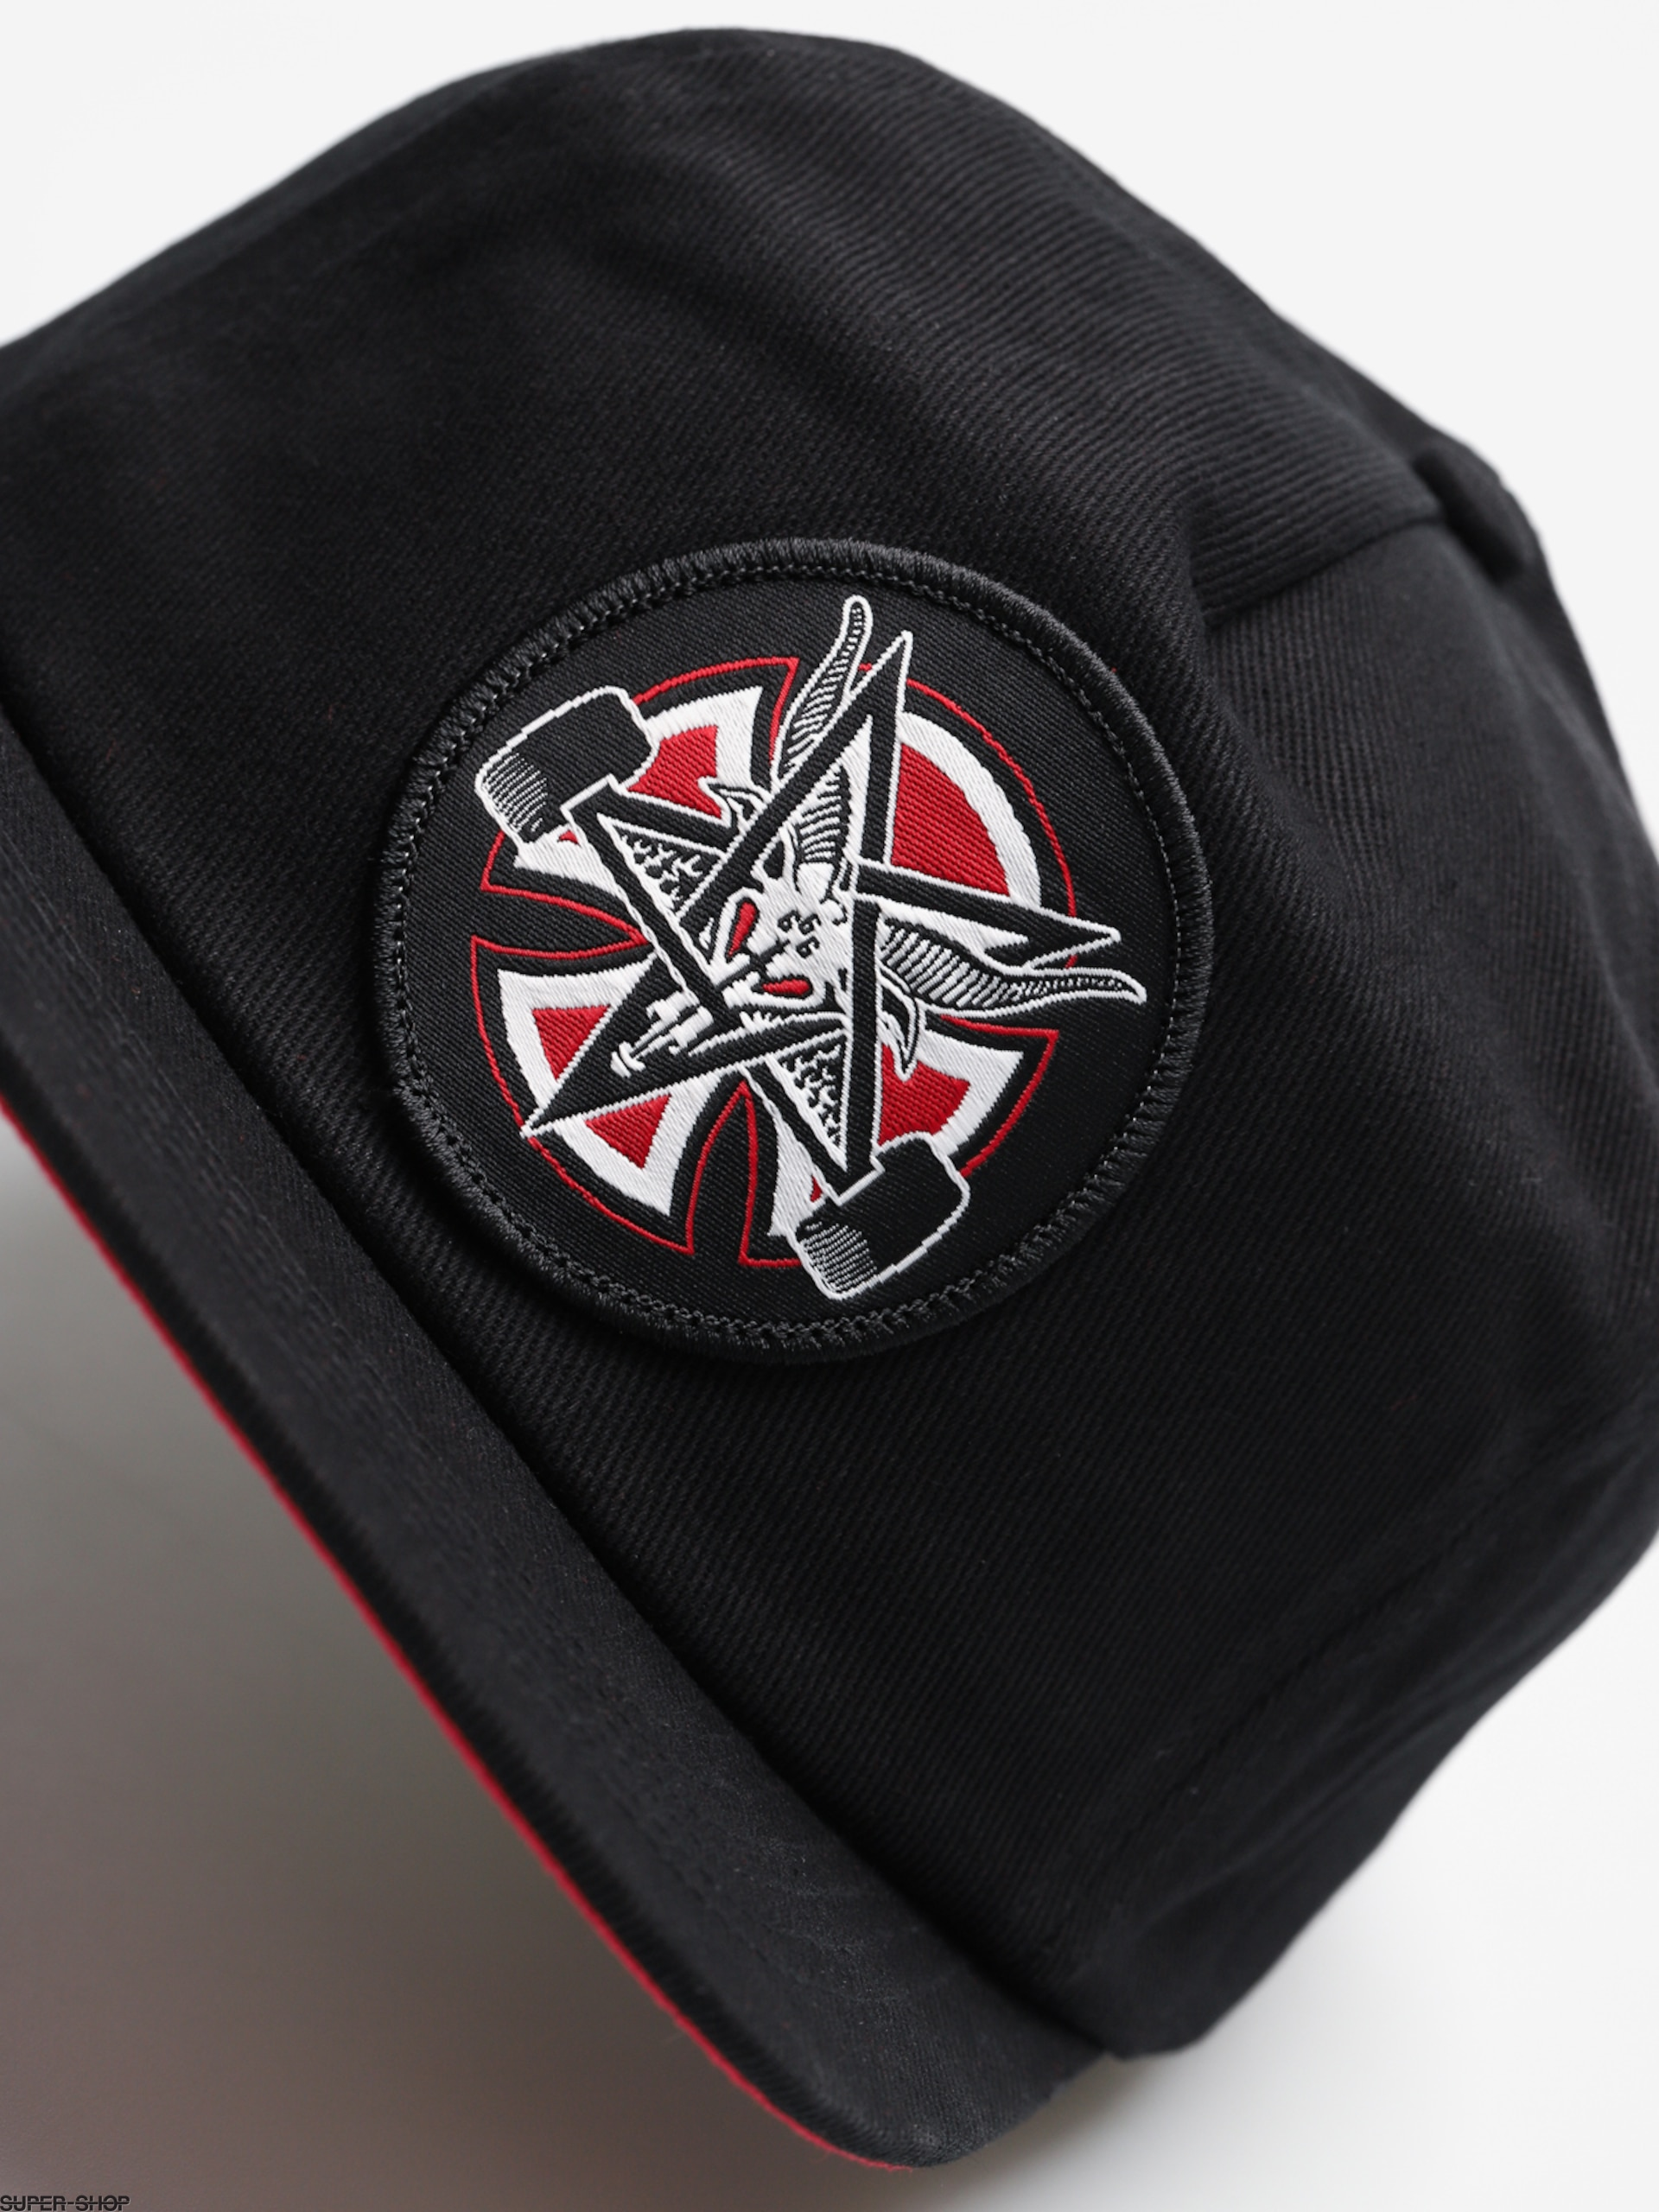 Independent x Thrasher Cap Pentagram Cross Adj Snapback ZD (black) aeb55ec52deb